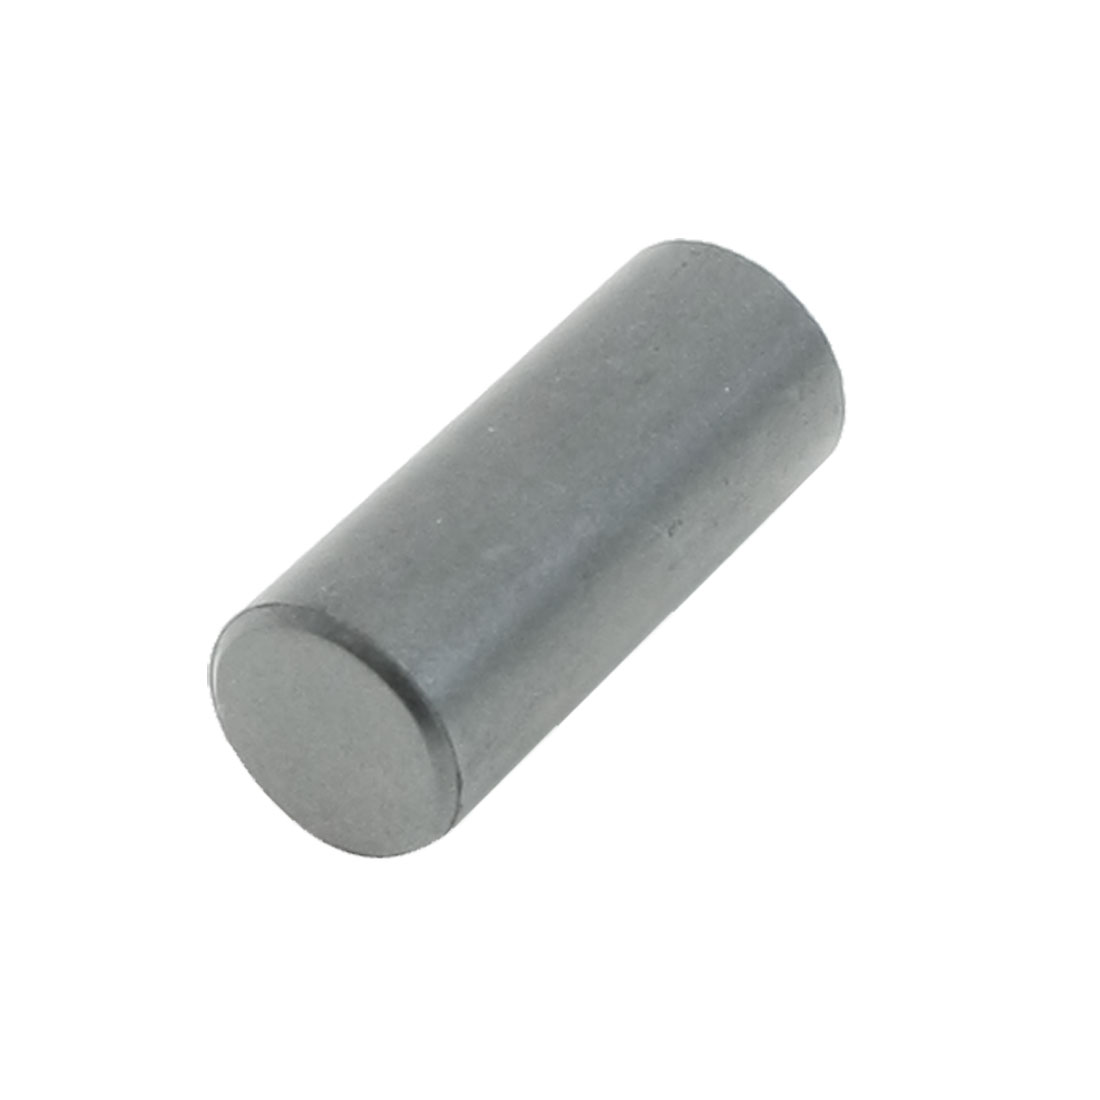 "0.4"" x 1"" Ferrite Rod Bar for Radio Antennas Balun"